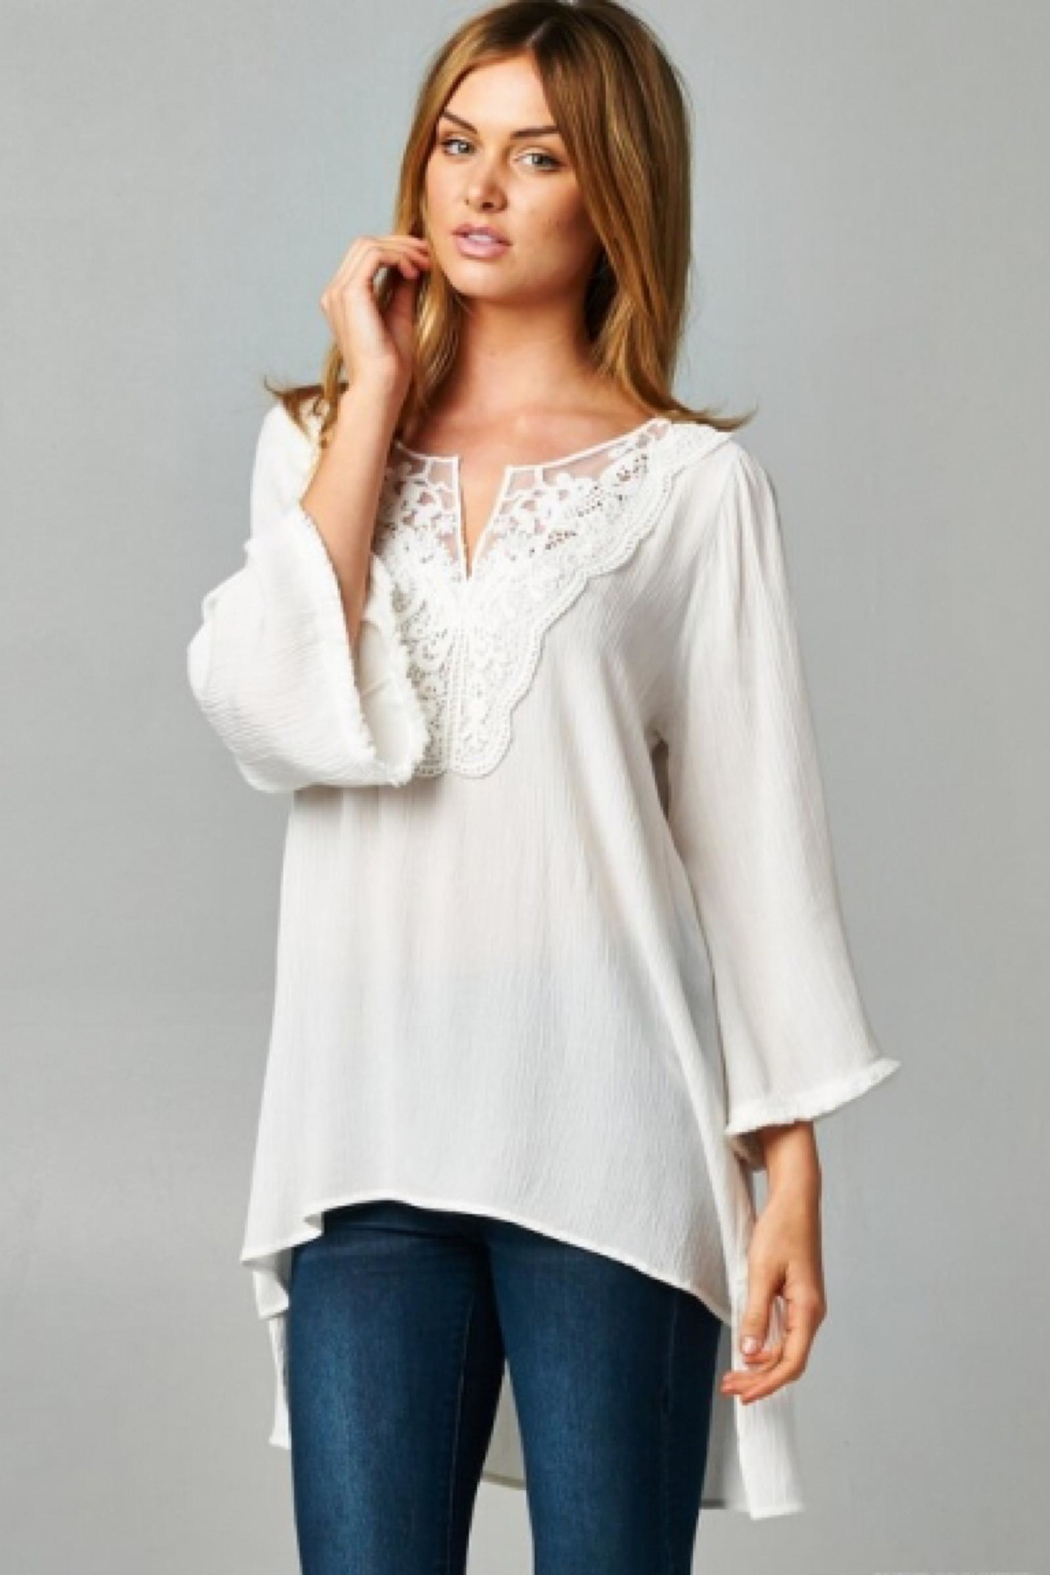 People Outfitter White Lace Tunic - Main Image